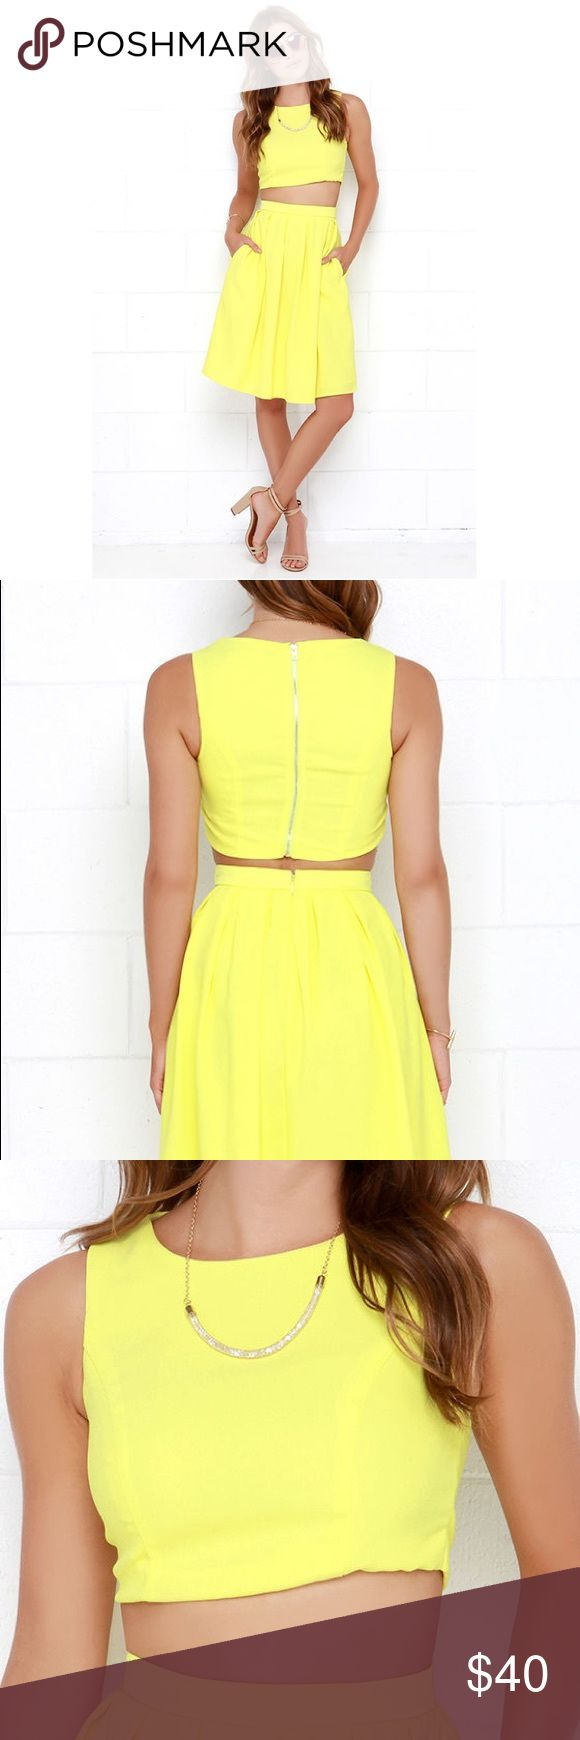 "LULU*S YELLOW TWO-PIECE MIDI DRESS Small As Seen On Alina of Styled by Alina blog! bright lemon yellow, woven fabric is shaped into a cropped, sleeveless bodice with a boat neck, princess seams, and exposed gold zipper at back. Matching skirt has cute box pleats above a full, midi-length hem with hidden back zipper and clasp. Fully lined. Small top measures 14.5"" long. Small bottom measures 24"" long. Self: 100% Polyester. Worn once for bridal shower, has been dry cleaned Lulu's Dresses Midi"